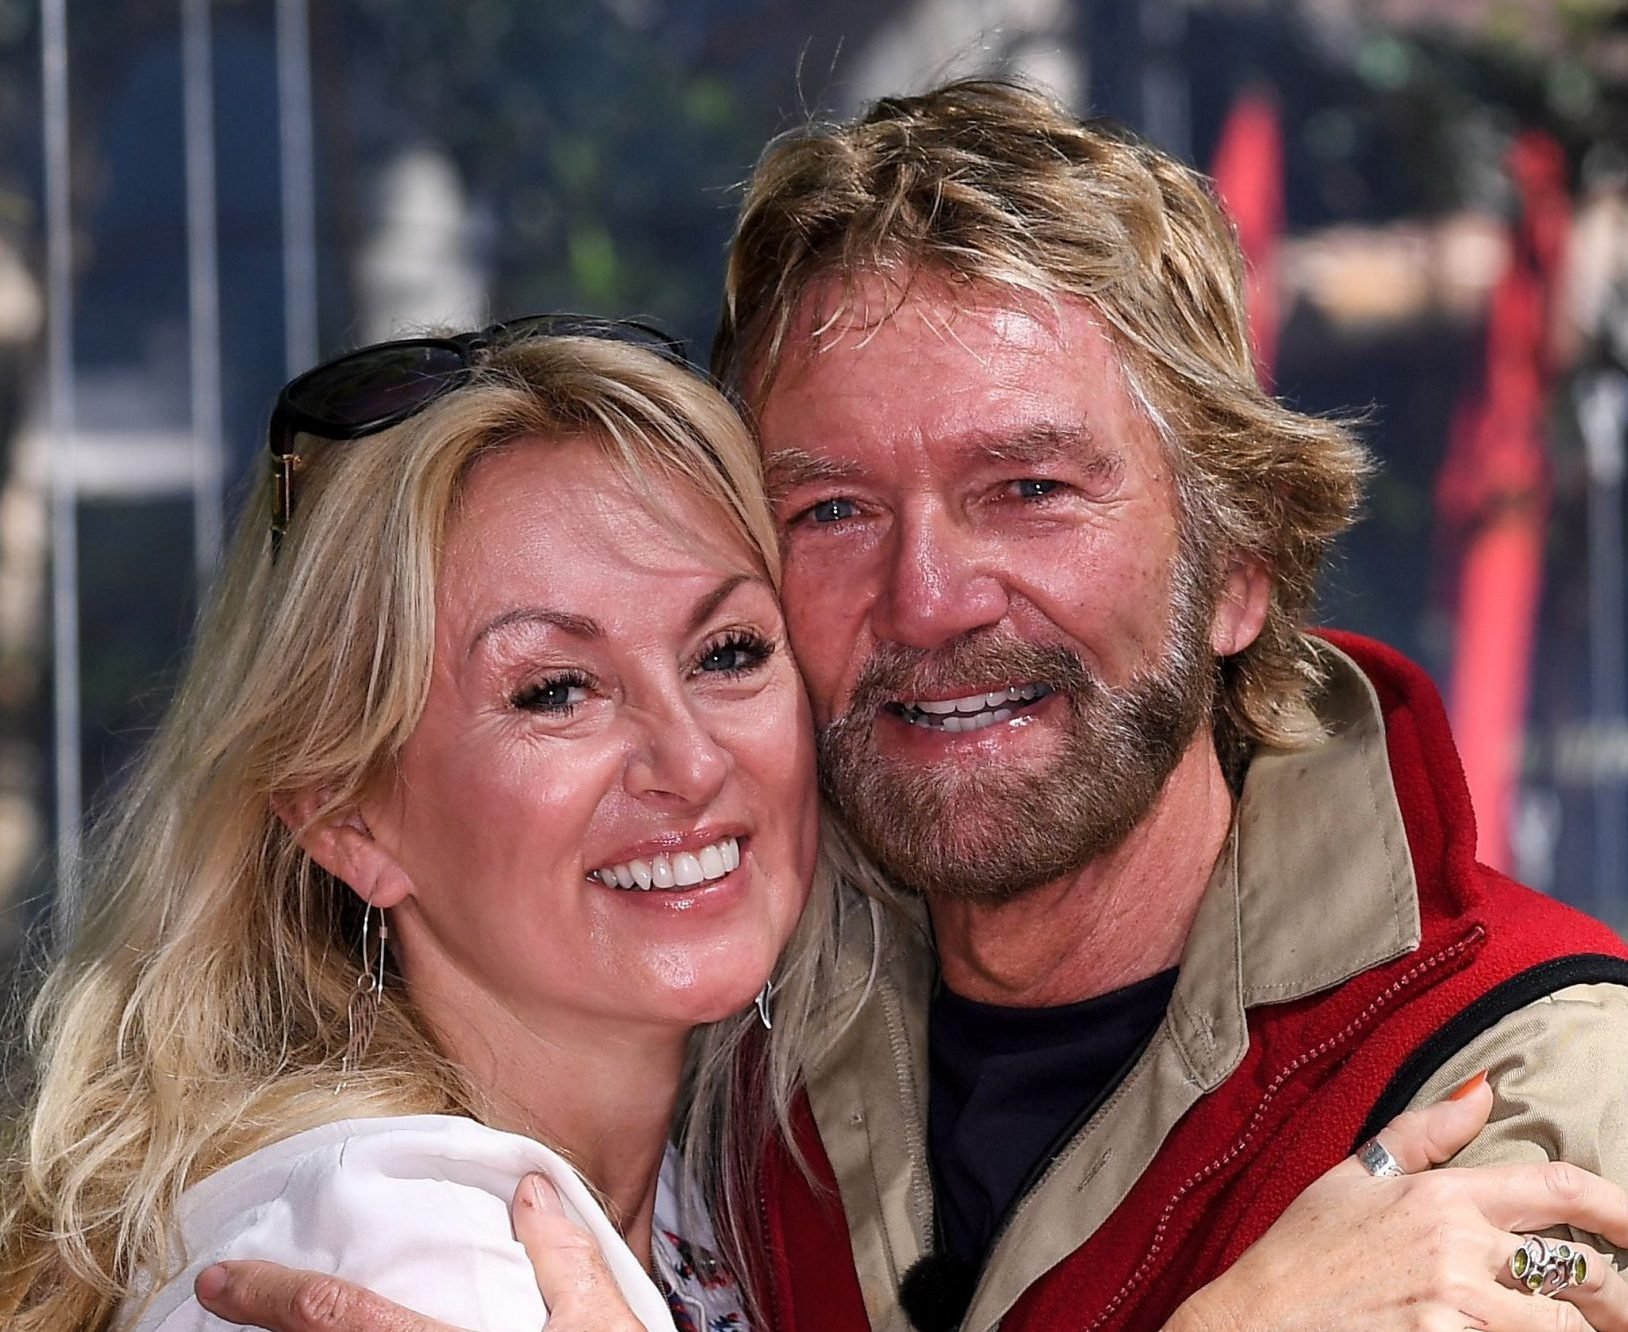 Mandatory Credit: Photo by James Gourley/REX (10010462m) Noel Edmonds is evicted and is joined by wife Liz Davies 'I'm a Celebrity... Get Me Out of Here!' TV Show, Series 18, Australia - 30 Nov 2018